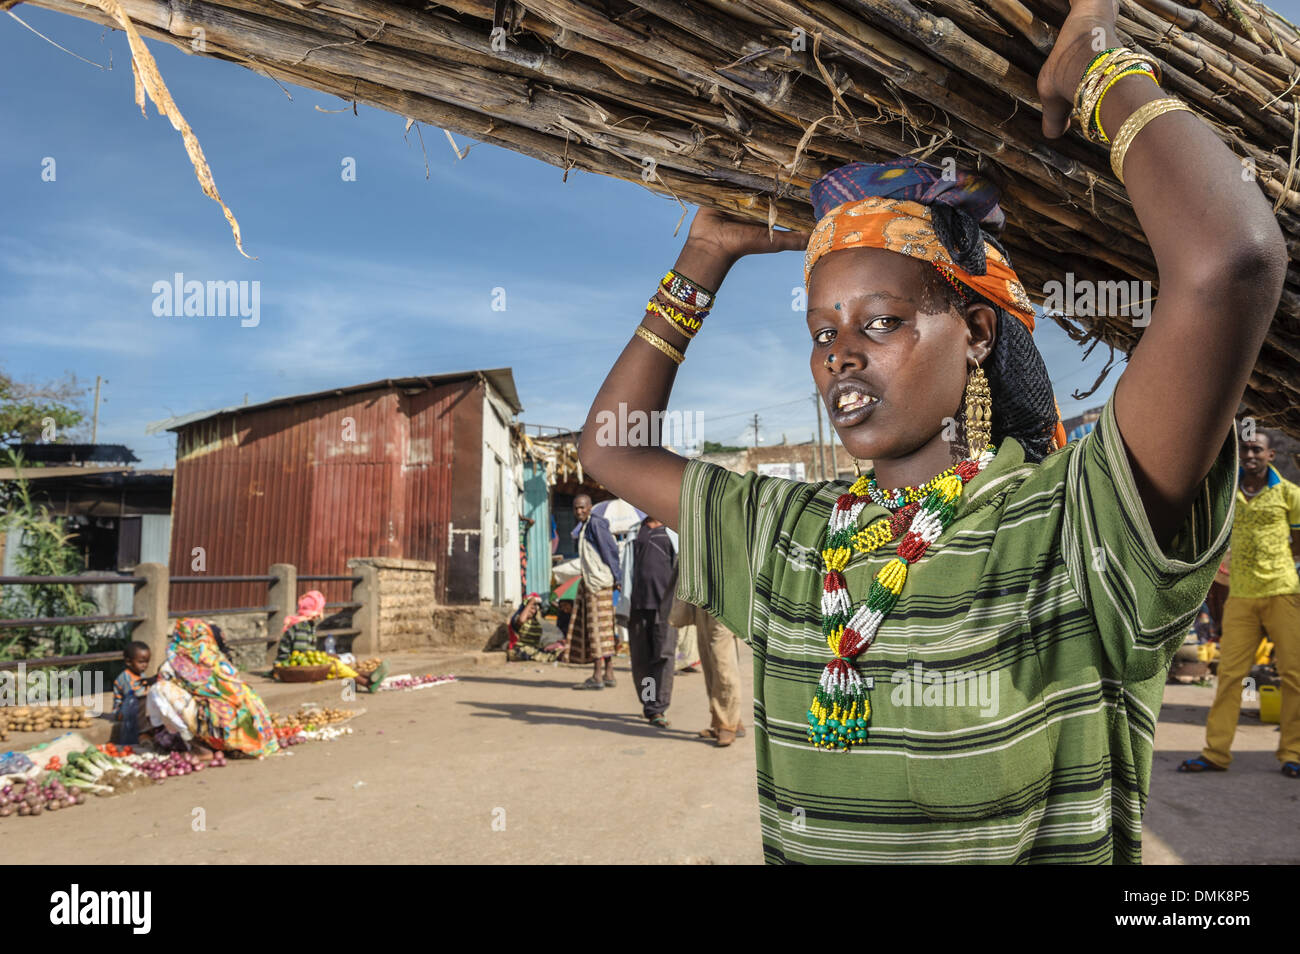 Young woman carrying a bunch of sugarcane on her head, Harar, Ethiopia, Africa - Stock Image